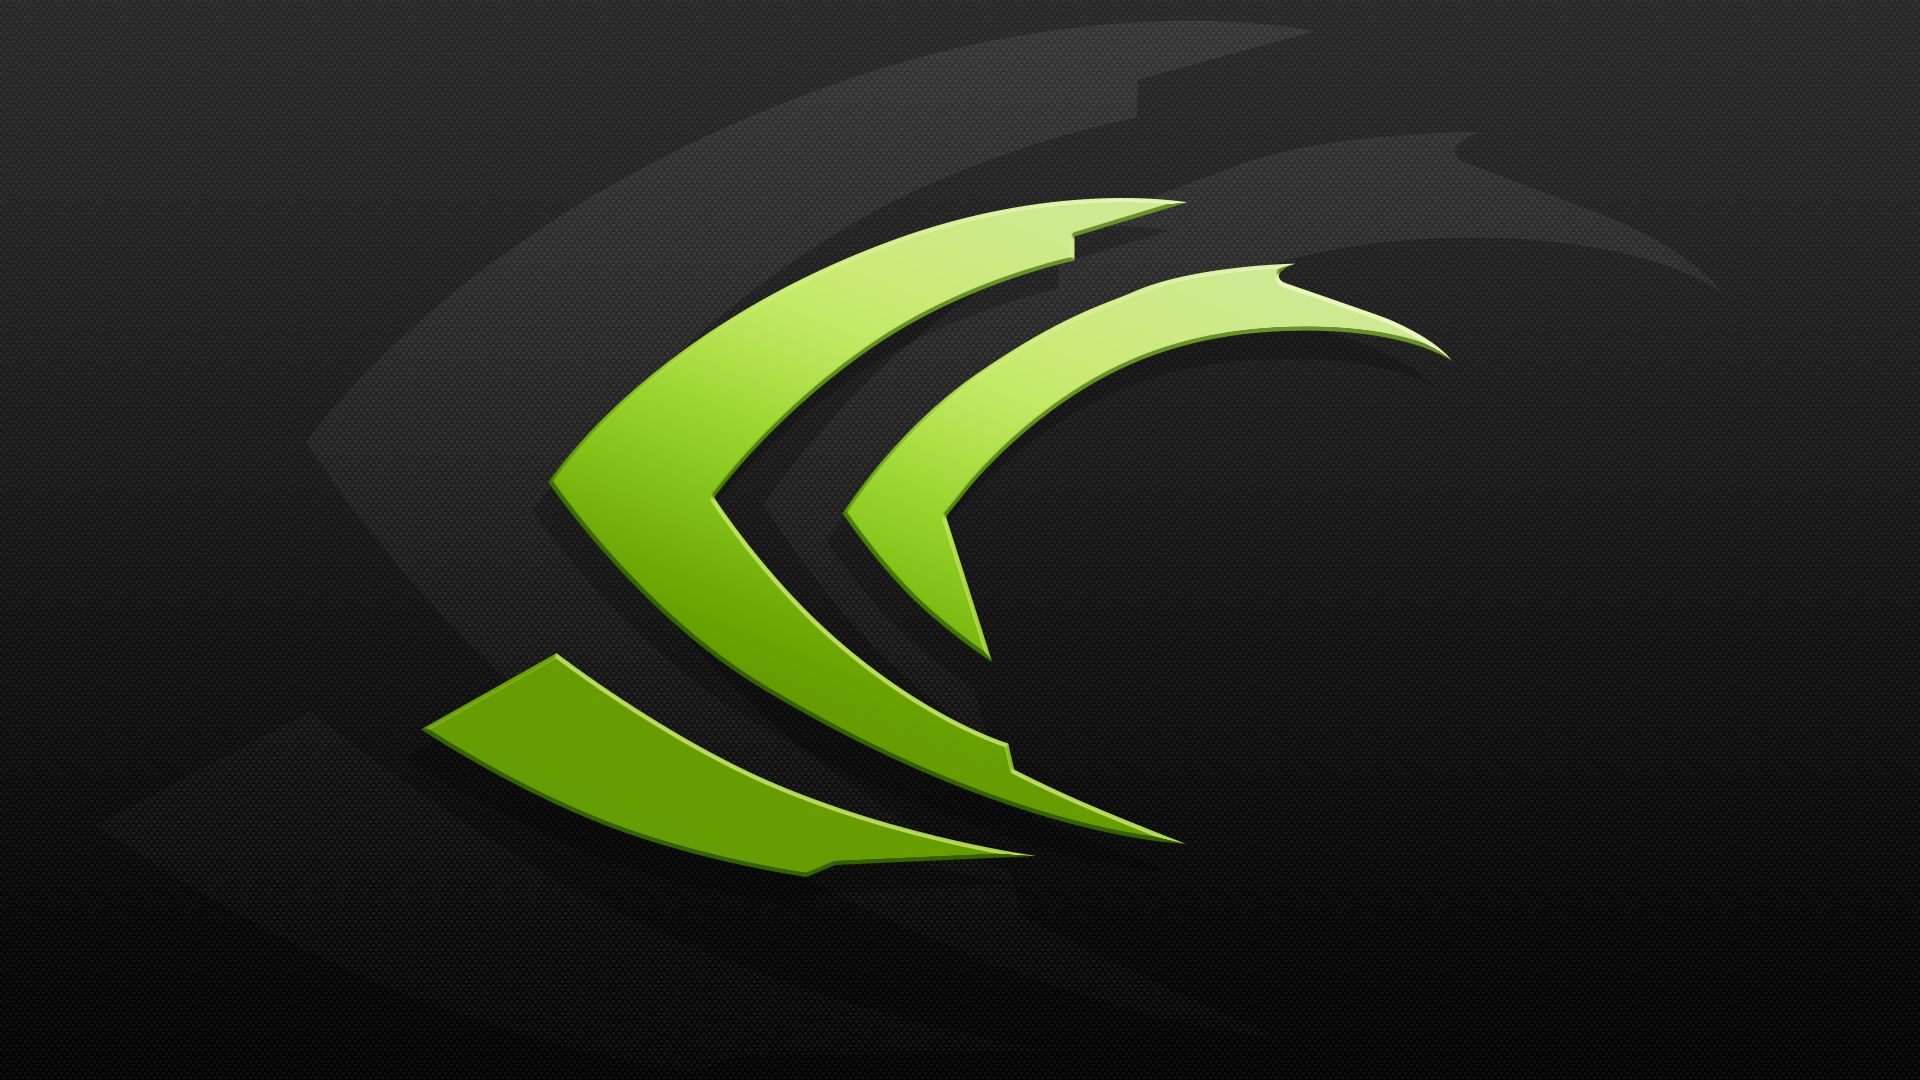 Nvidia Wallpapers, Pictures, Images - 1616.3KB